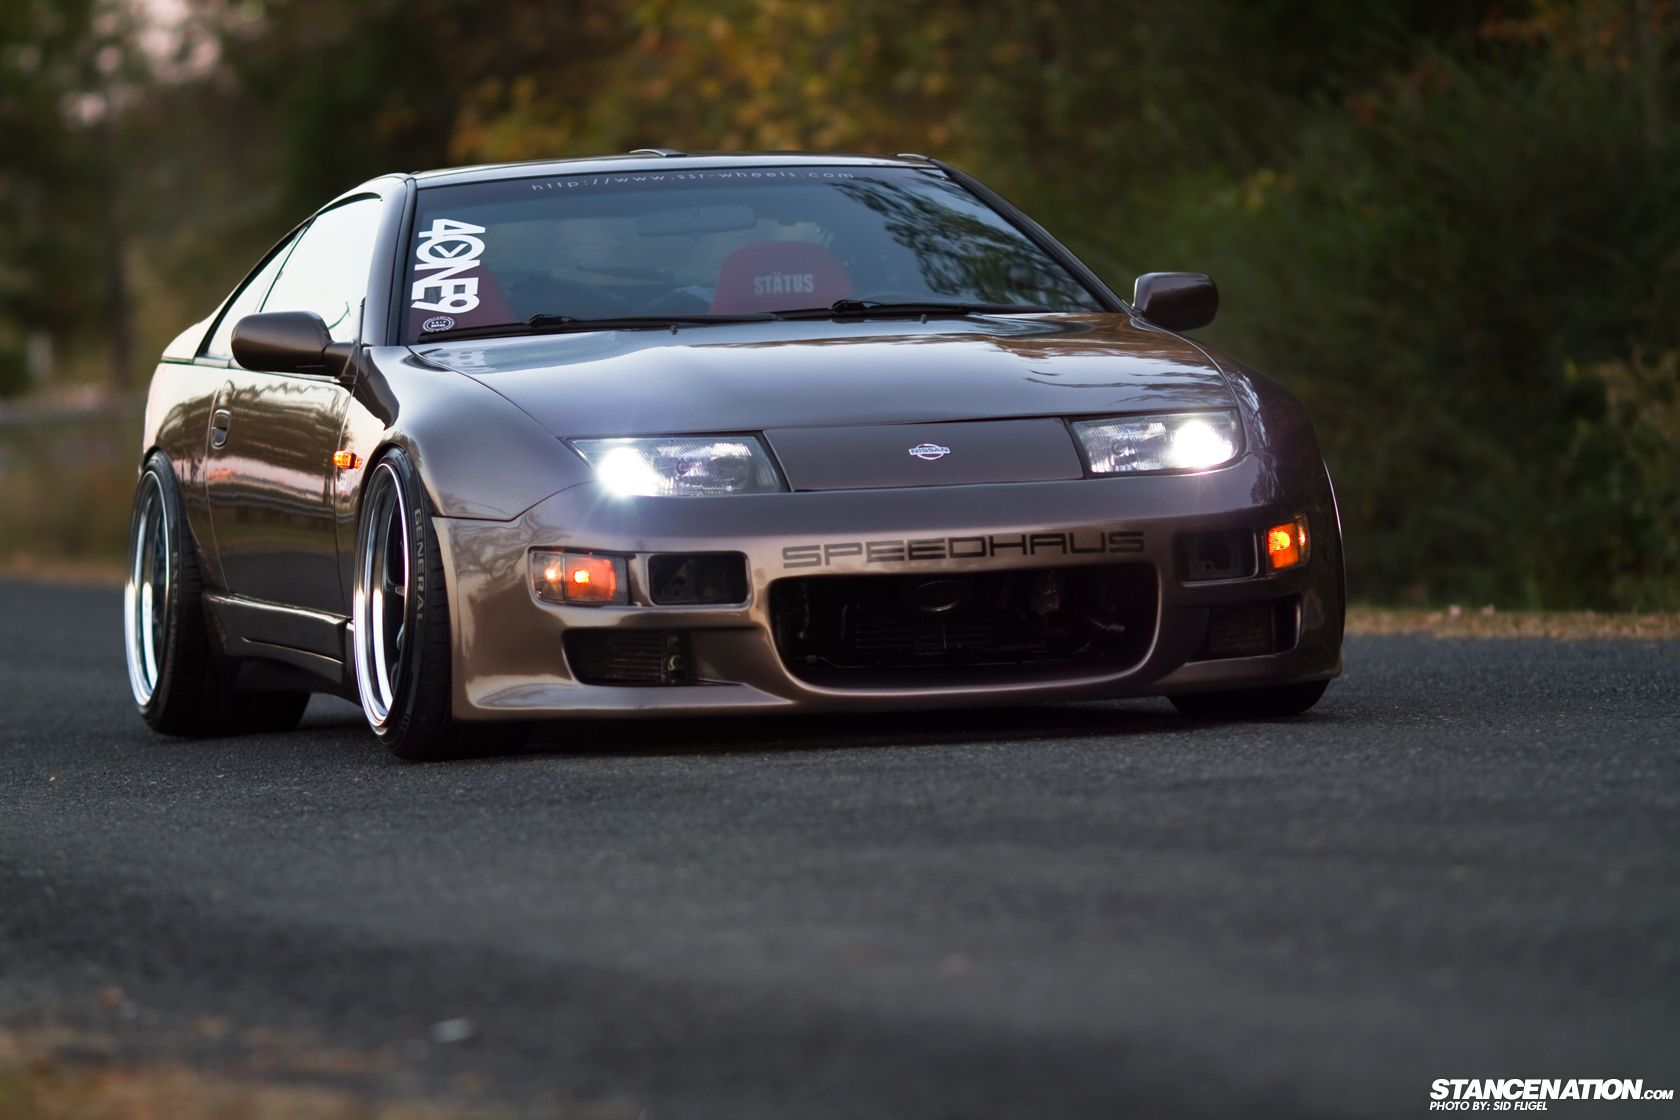 best 25+ nissan 300zx ideas on pinterest | nissan 300zx turbo